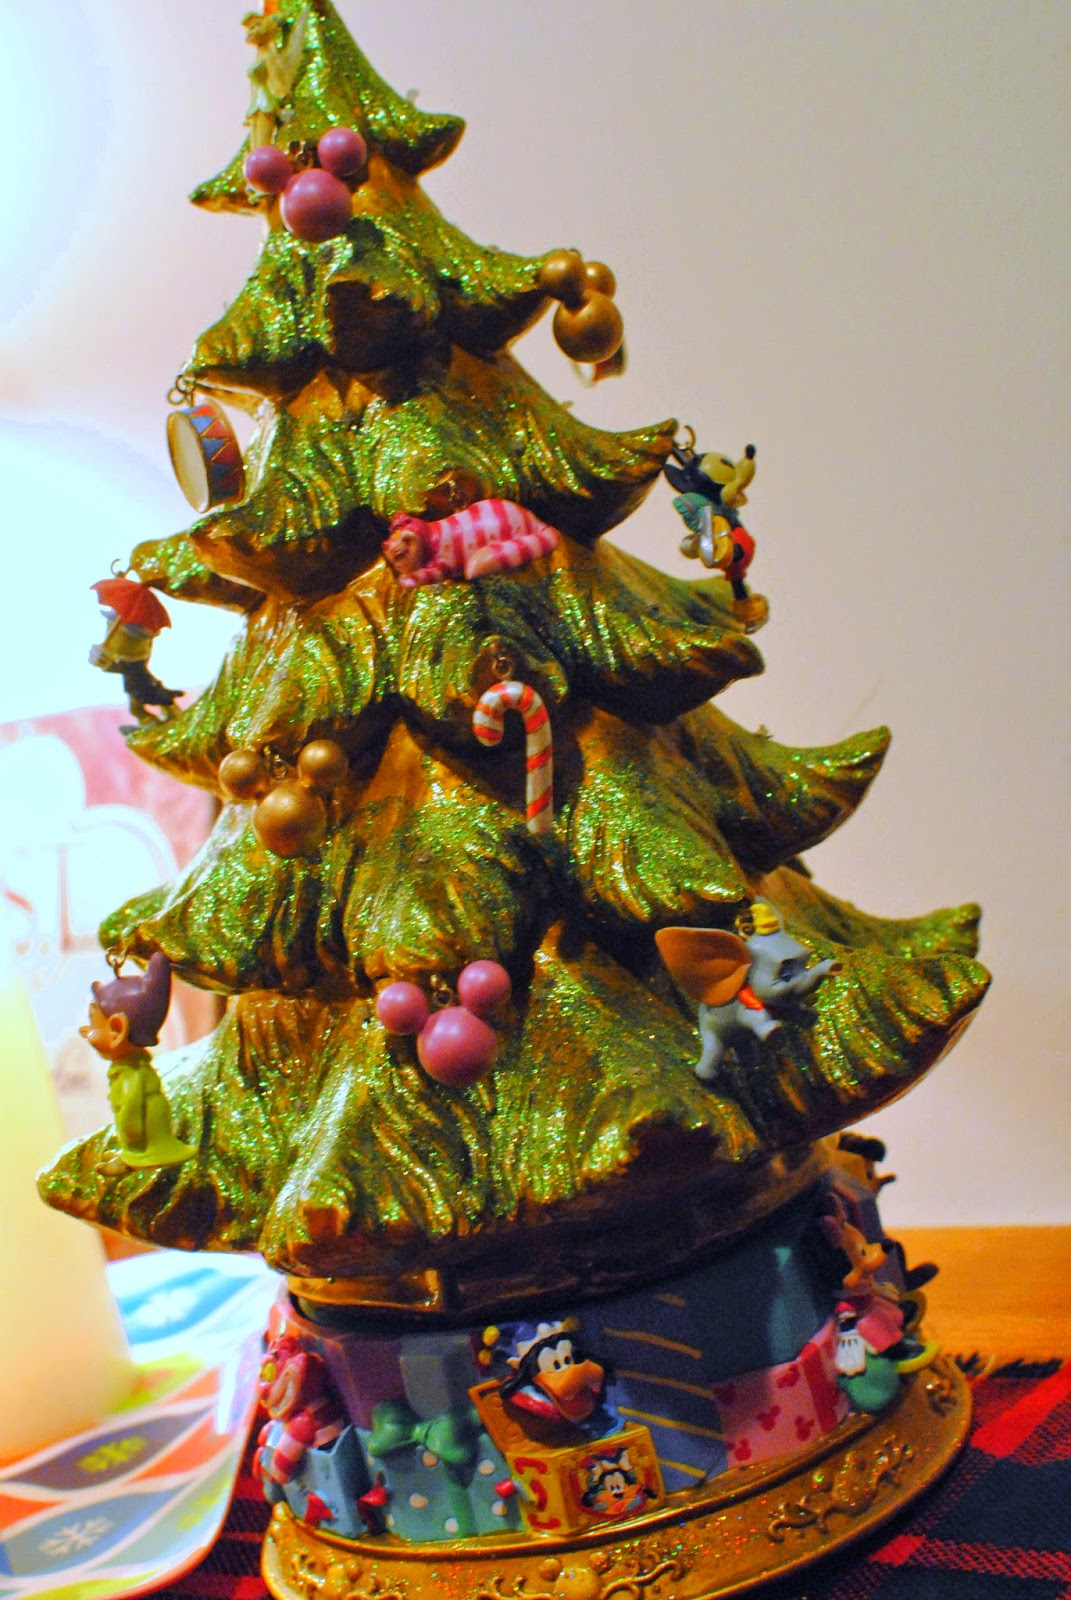 Disney tree ornaments - We Also Got This Christmas Tree From Disney World Years Ago I Love The Tiny Ornaments On It It Reminds Me Of Those Old Fashion Christmas Trees With The